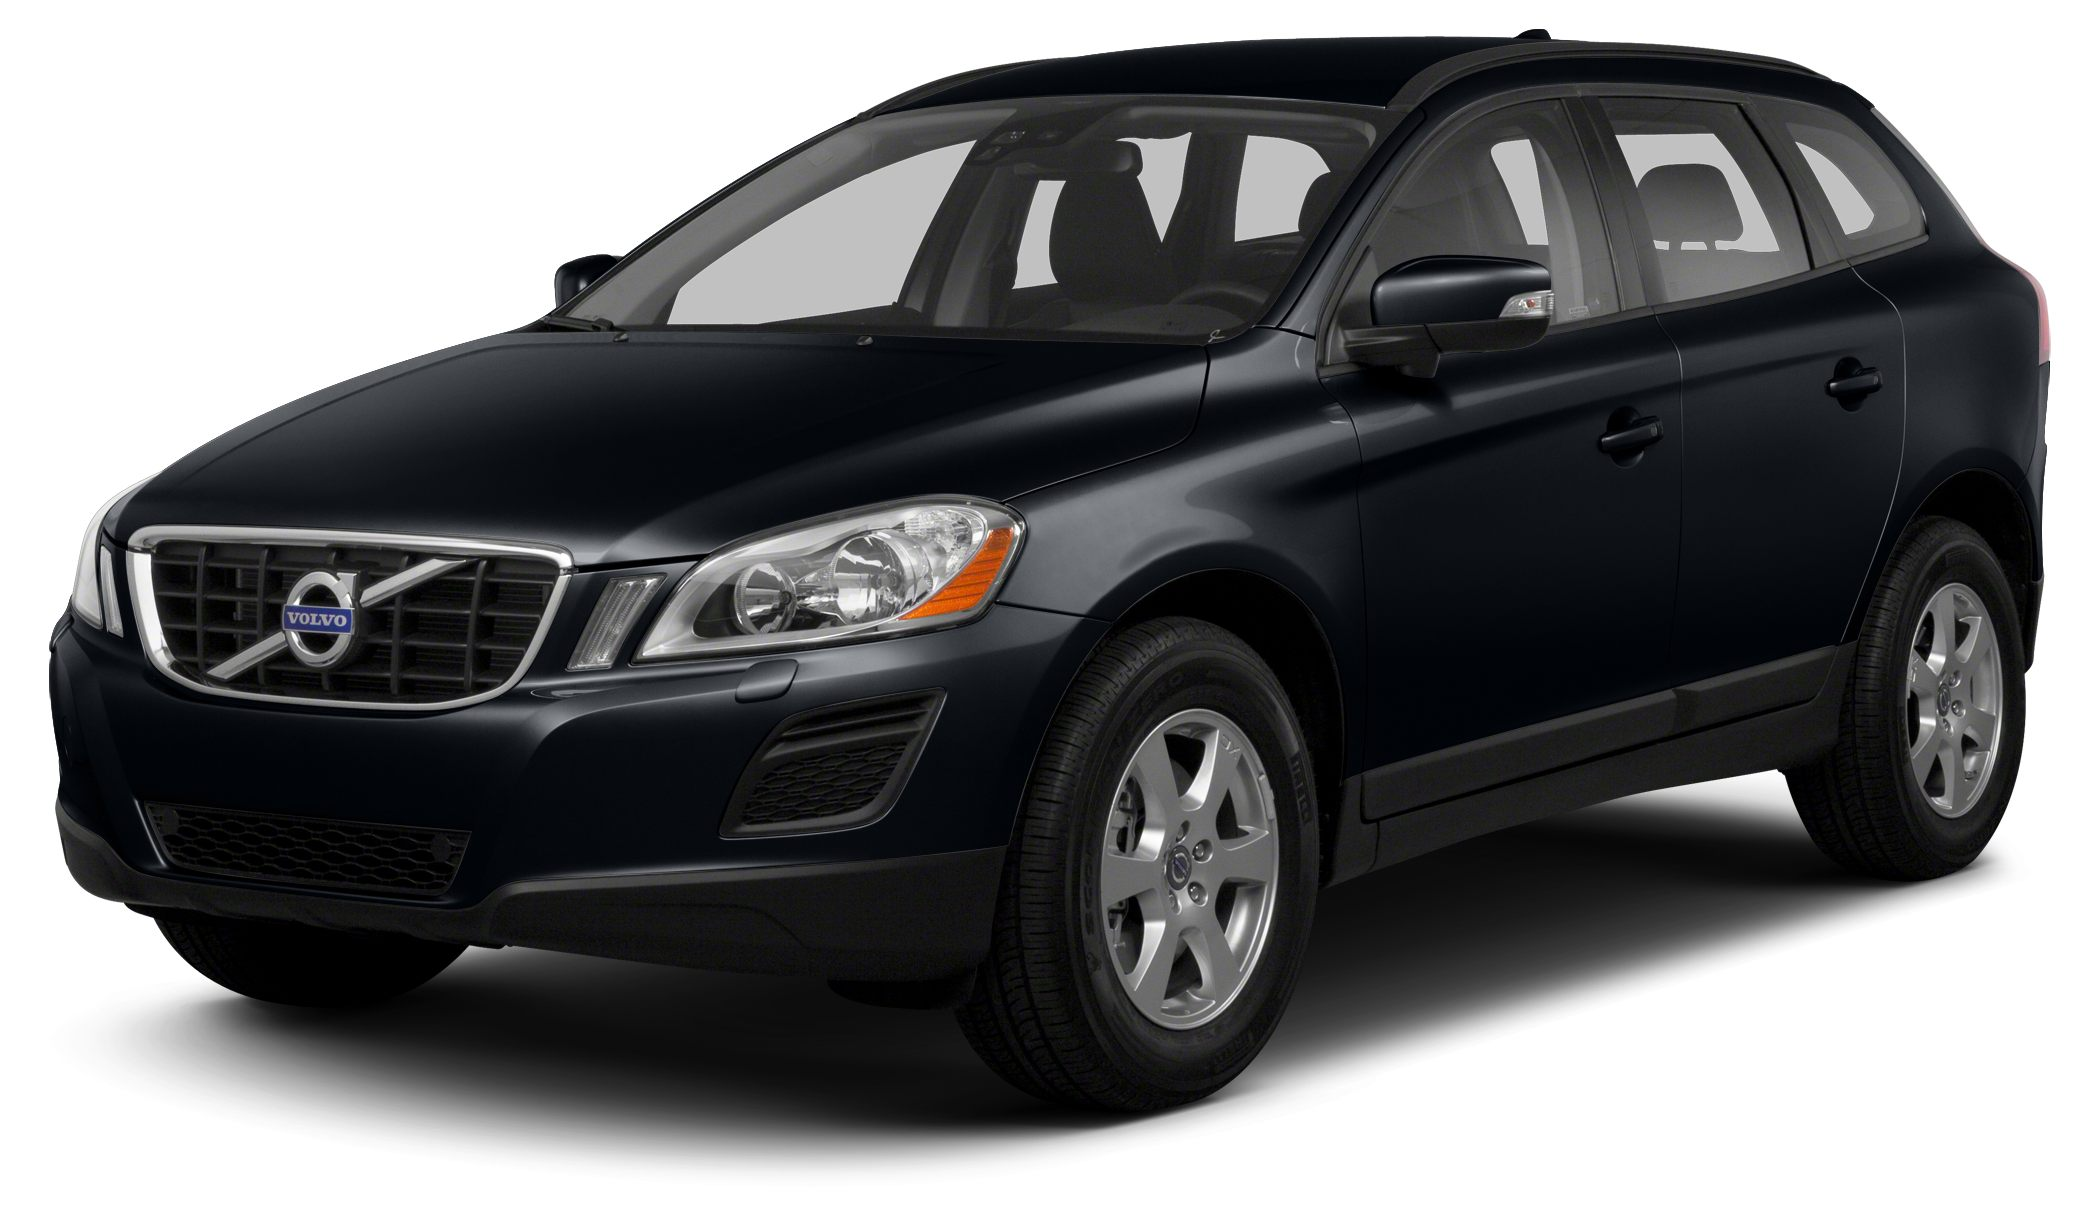 2013 Volvo XC60 32 New Inventory All Wheel Drive never get stuck again This is the vehicle for